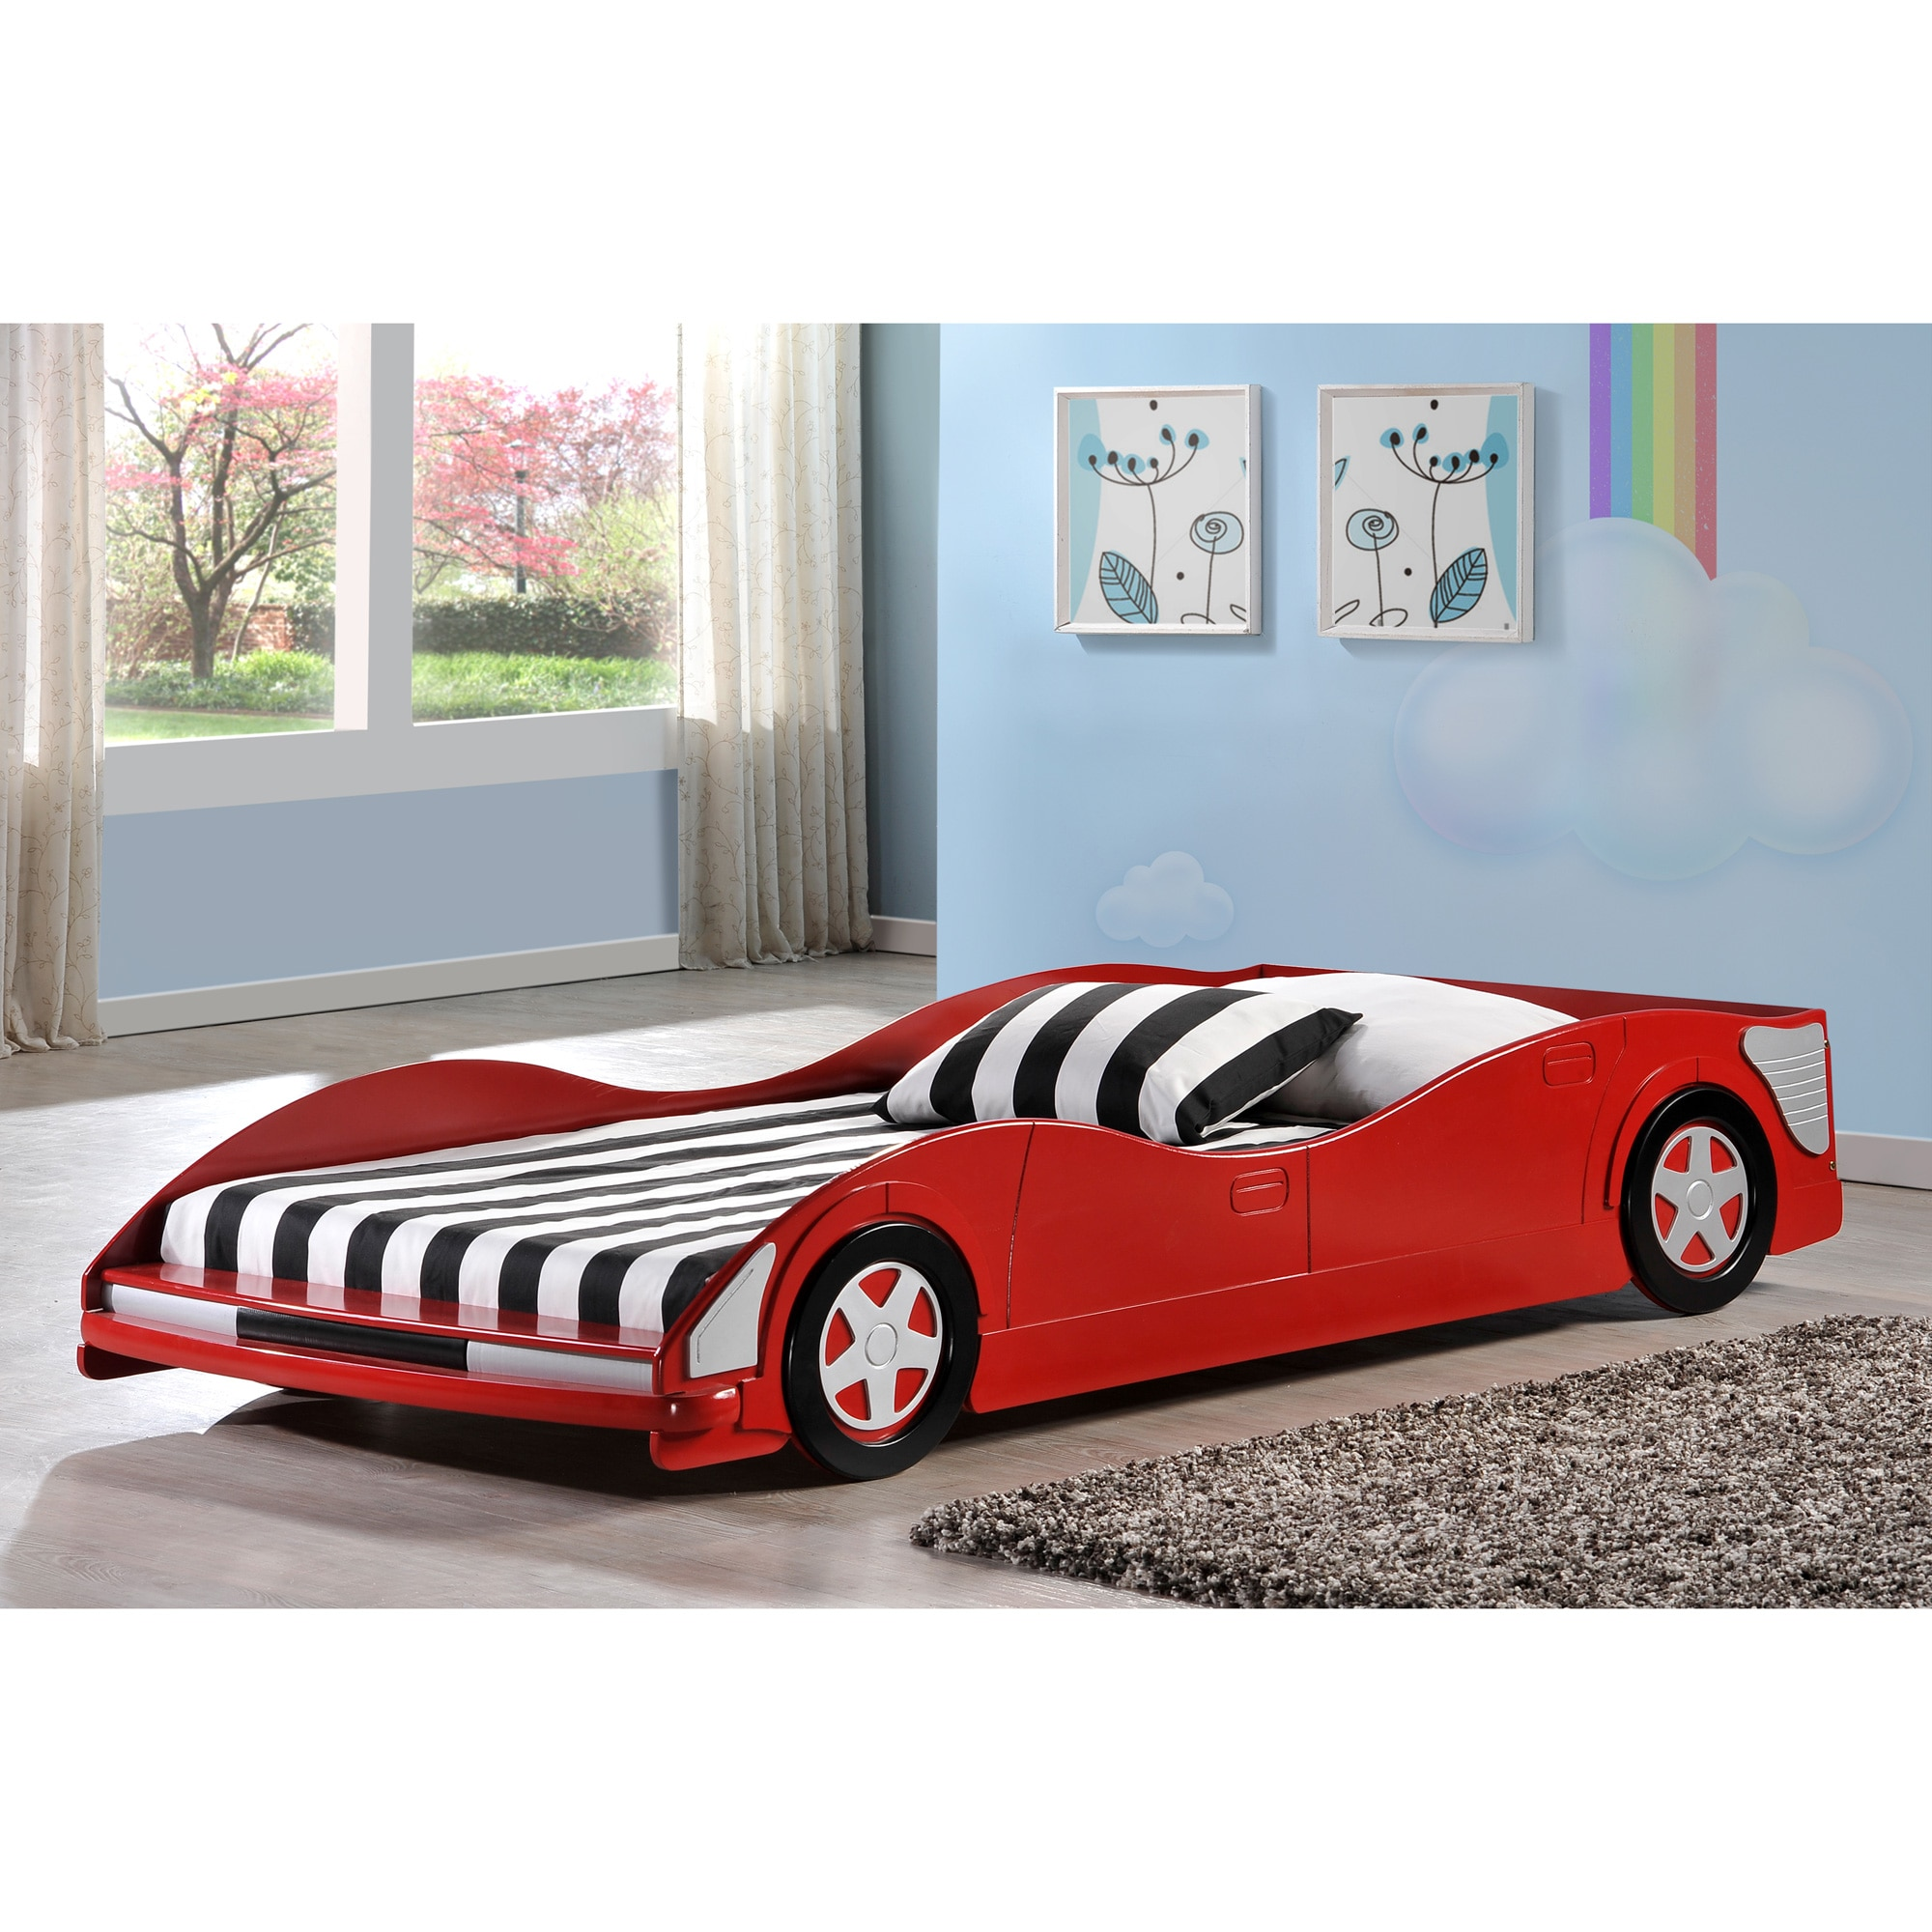 Donco Kids Red Race Car Twin Bed (Twin, Red)